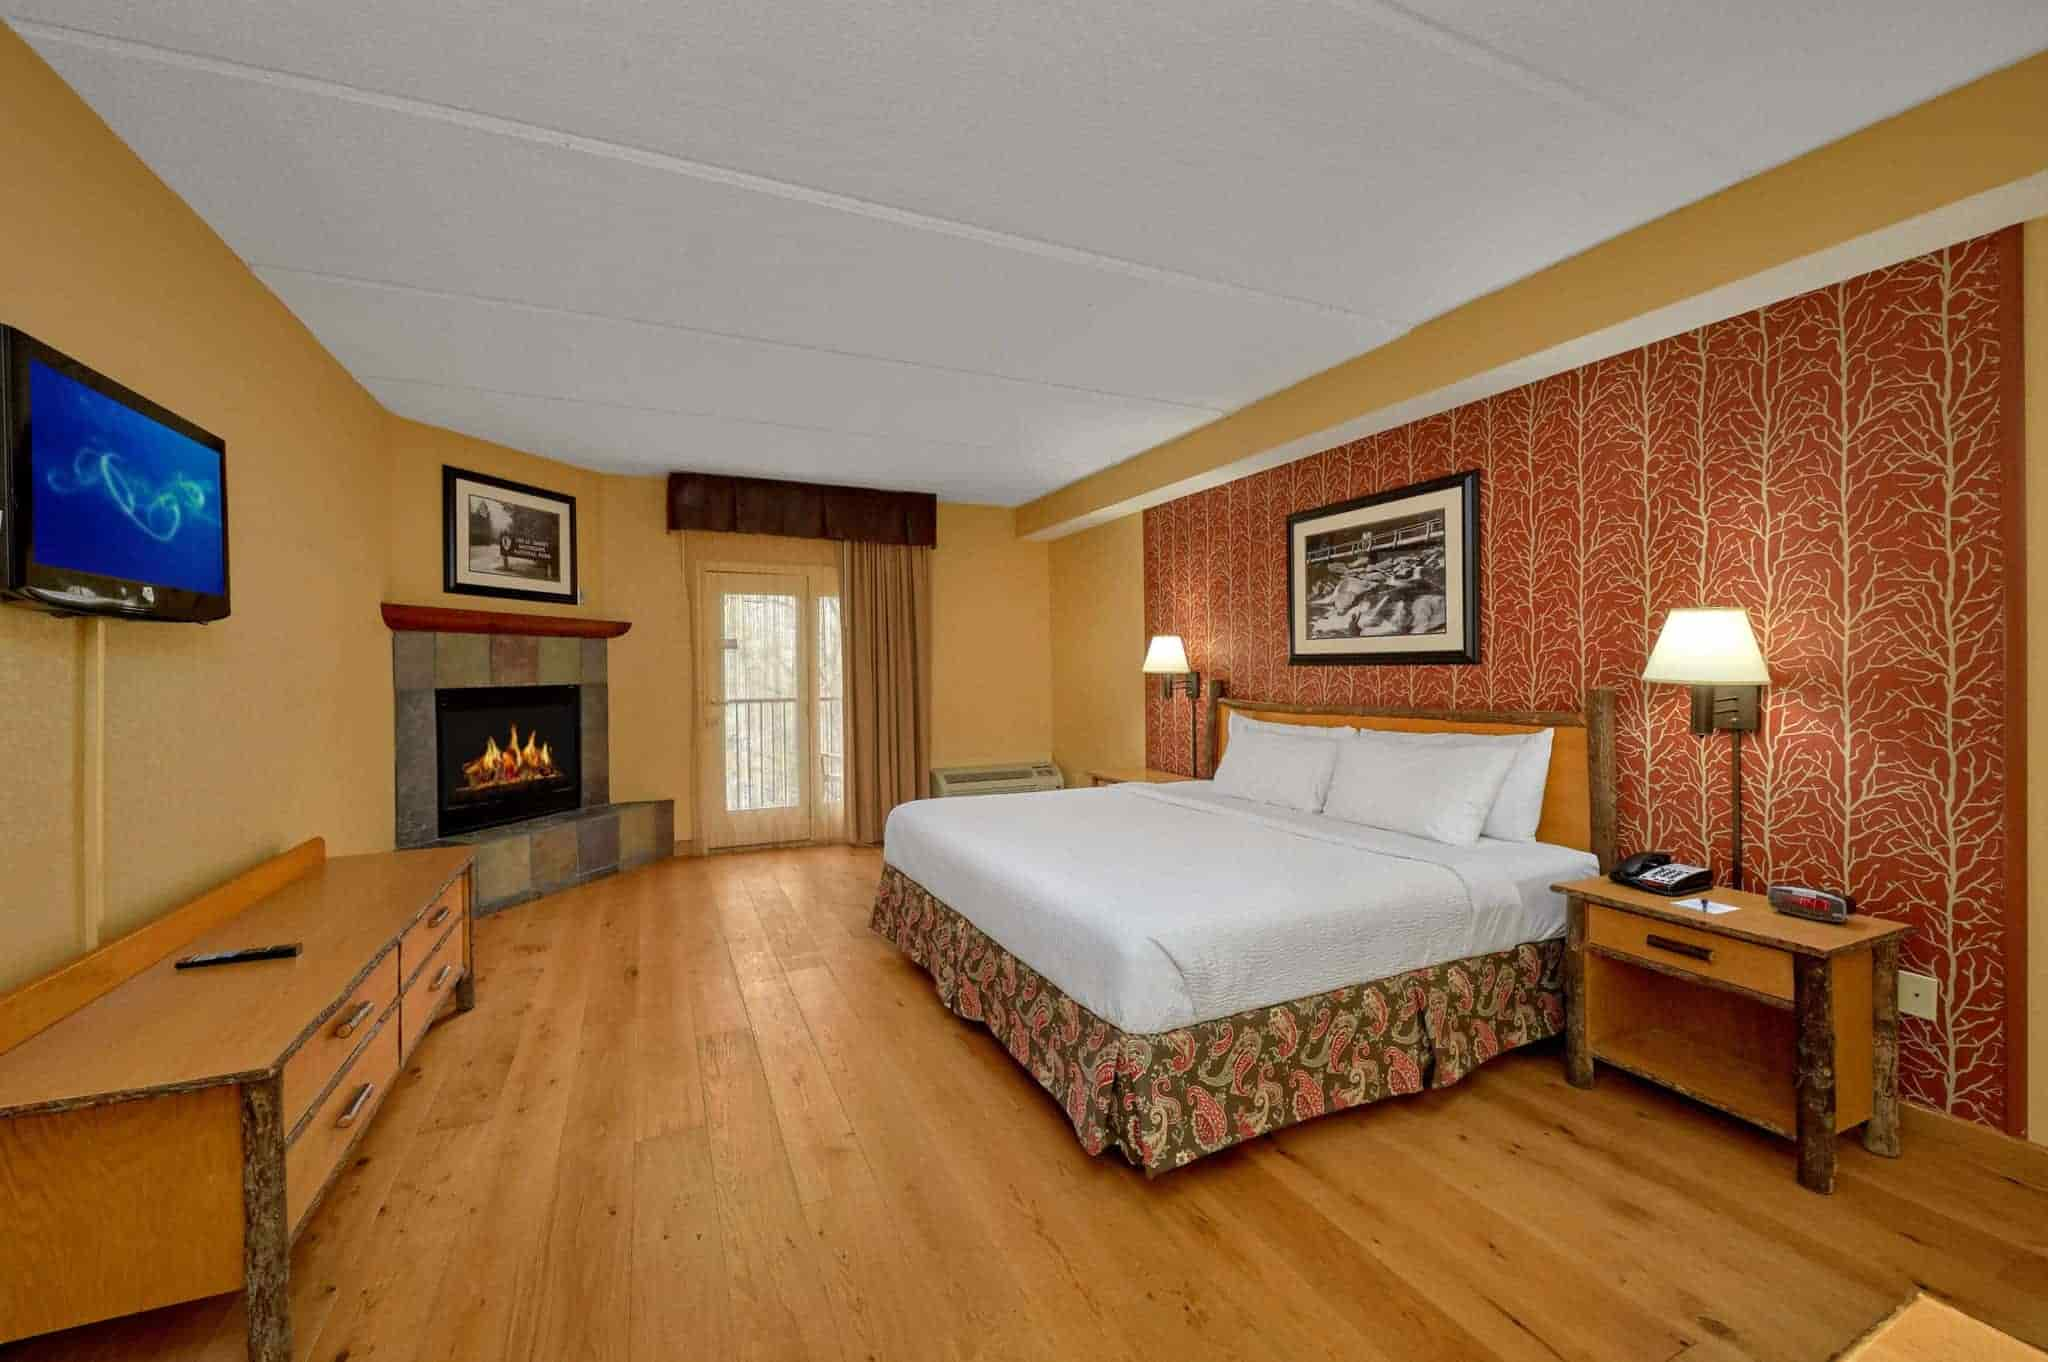 King Room with Balcony in Bearskin Lodge hotel in Gatlinburg